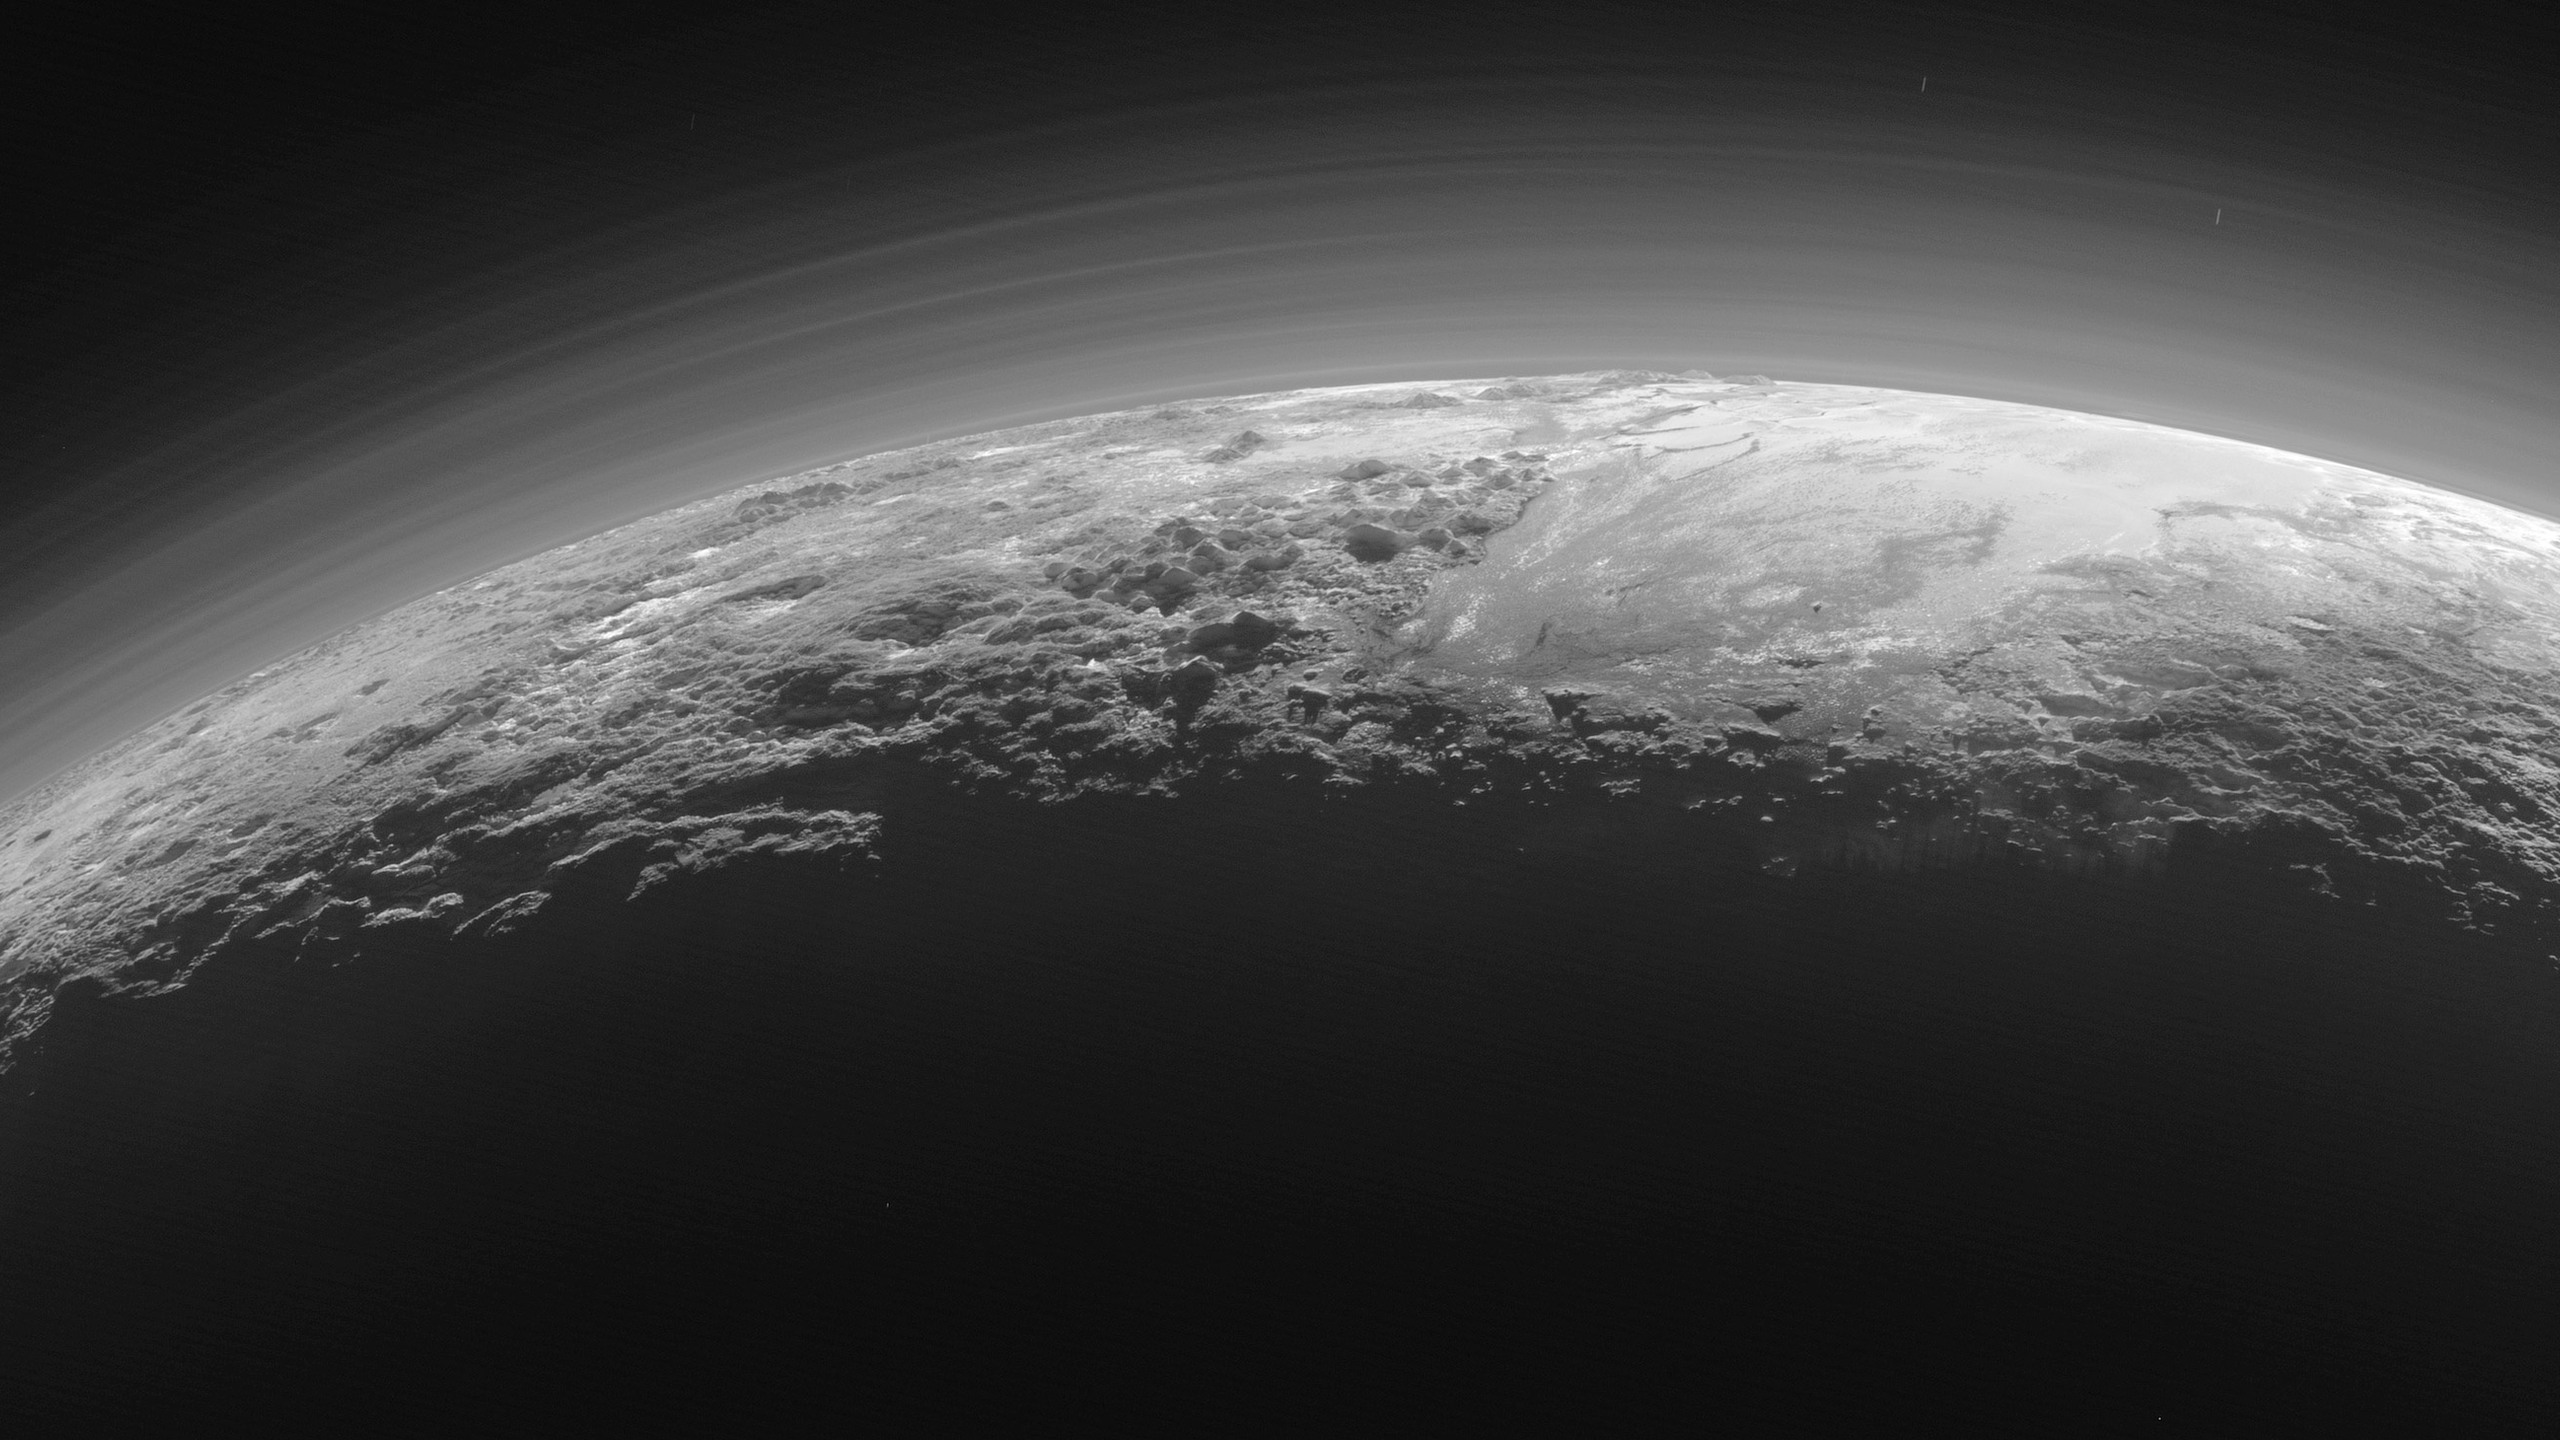 2560x1440 Pluto Original Nasa 1440p Resolution Hd 4k Wallpapers Images Backgrounds Photos And Pictures